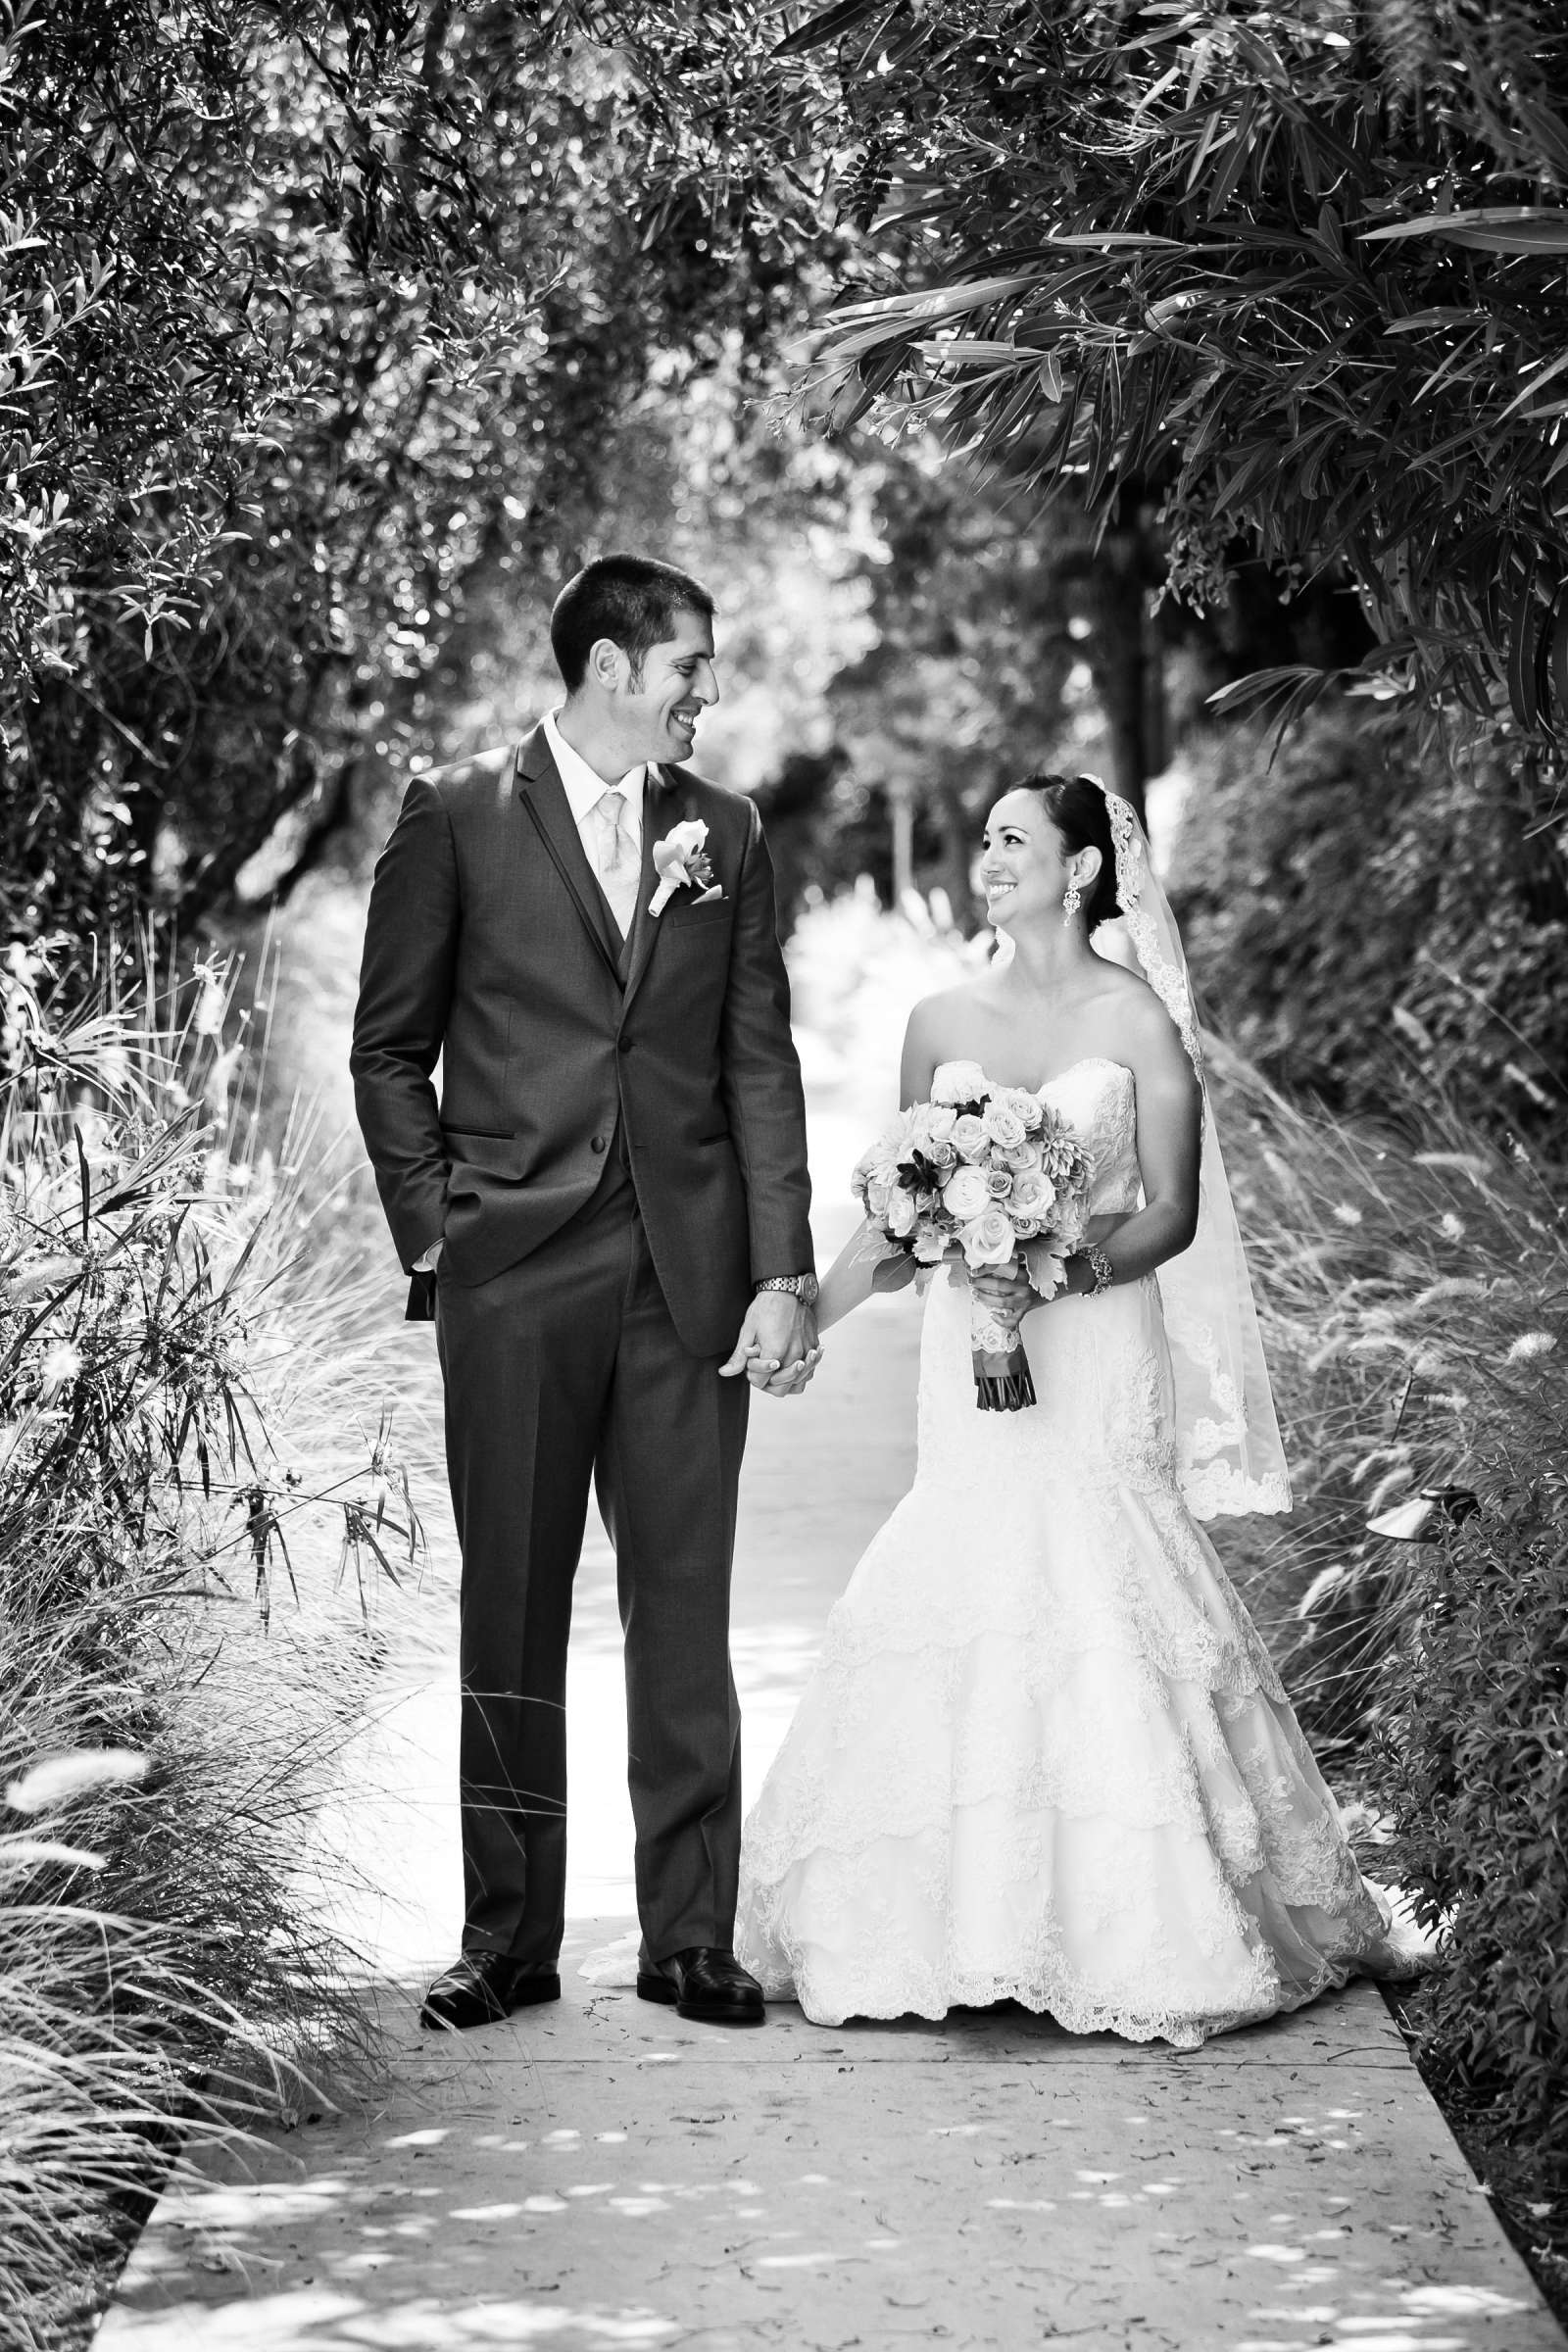 Estancia Wedding coordinated by Evelyn Francesca Events & Design, Megan and Patrick Wedding Photo #3 by True Photography